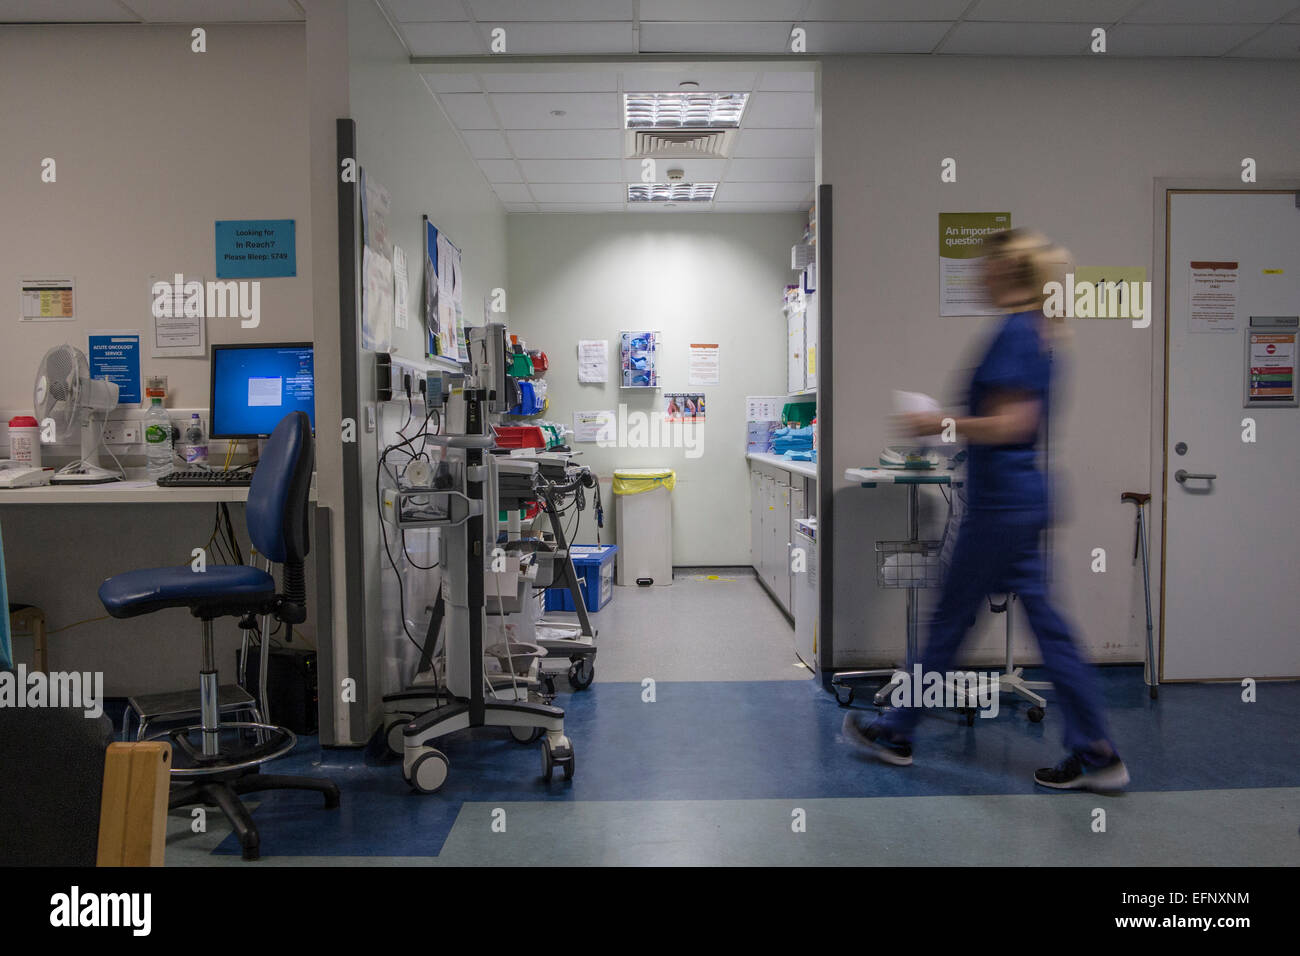 A busy hospital with doctors, nurses and staff busy at work in an accident and emergency ward in a British hospital Stock Photo